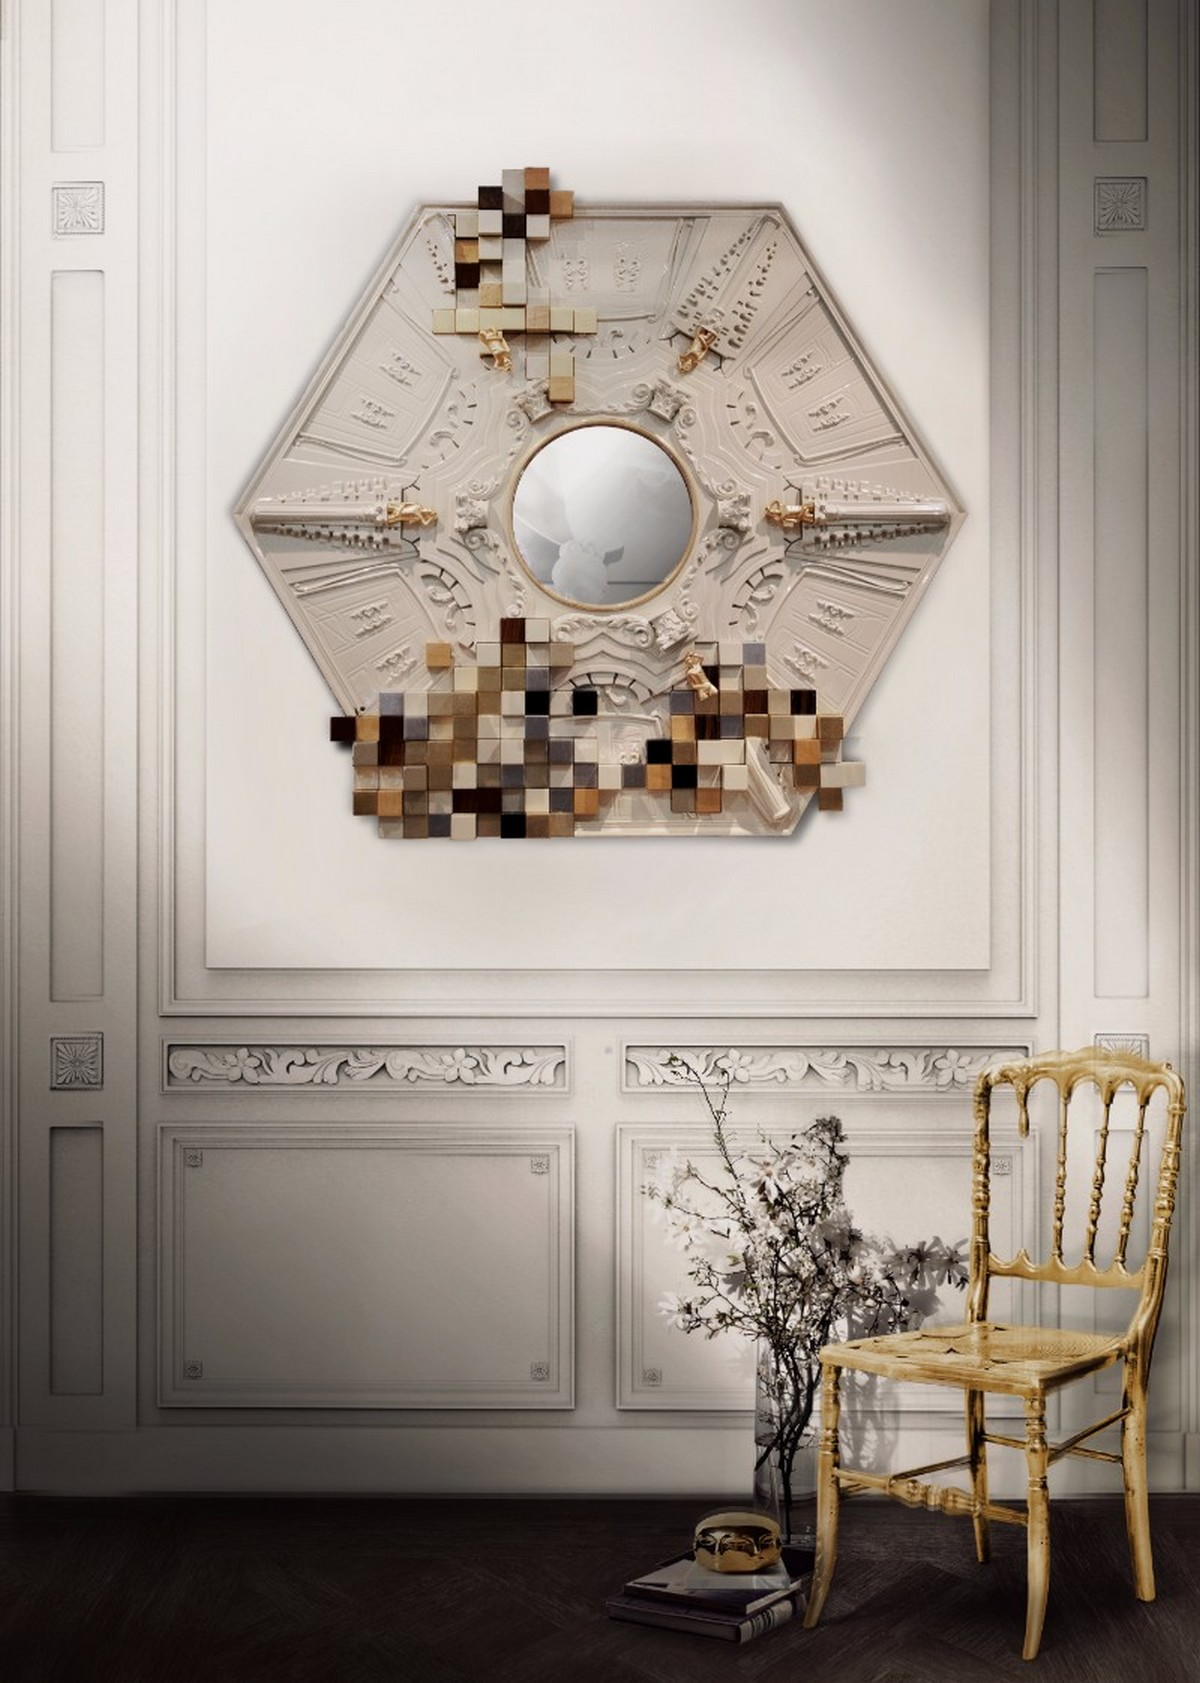 Maison et Objet: Luxury Dining Chairs By Covet House maison et objet Maison et Objet: Luxury Dining Chairs By Covet House emporium